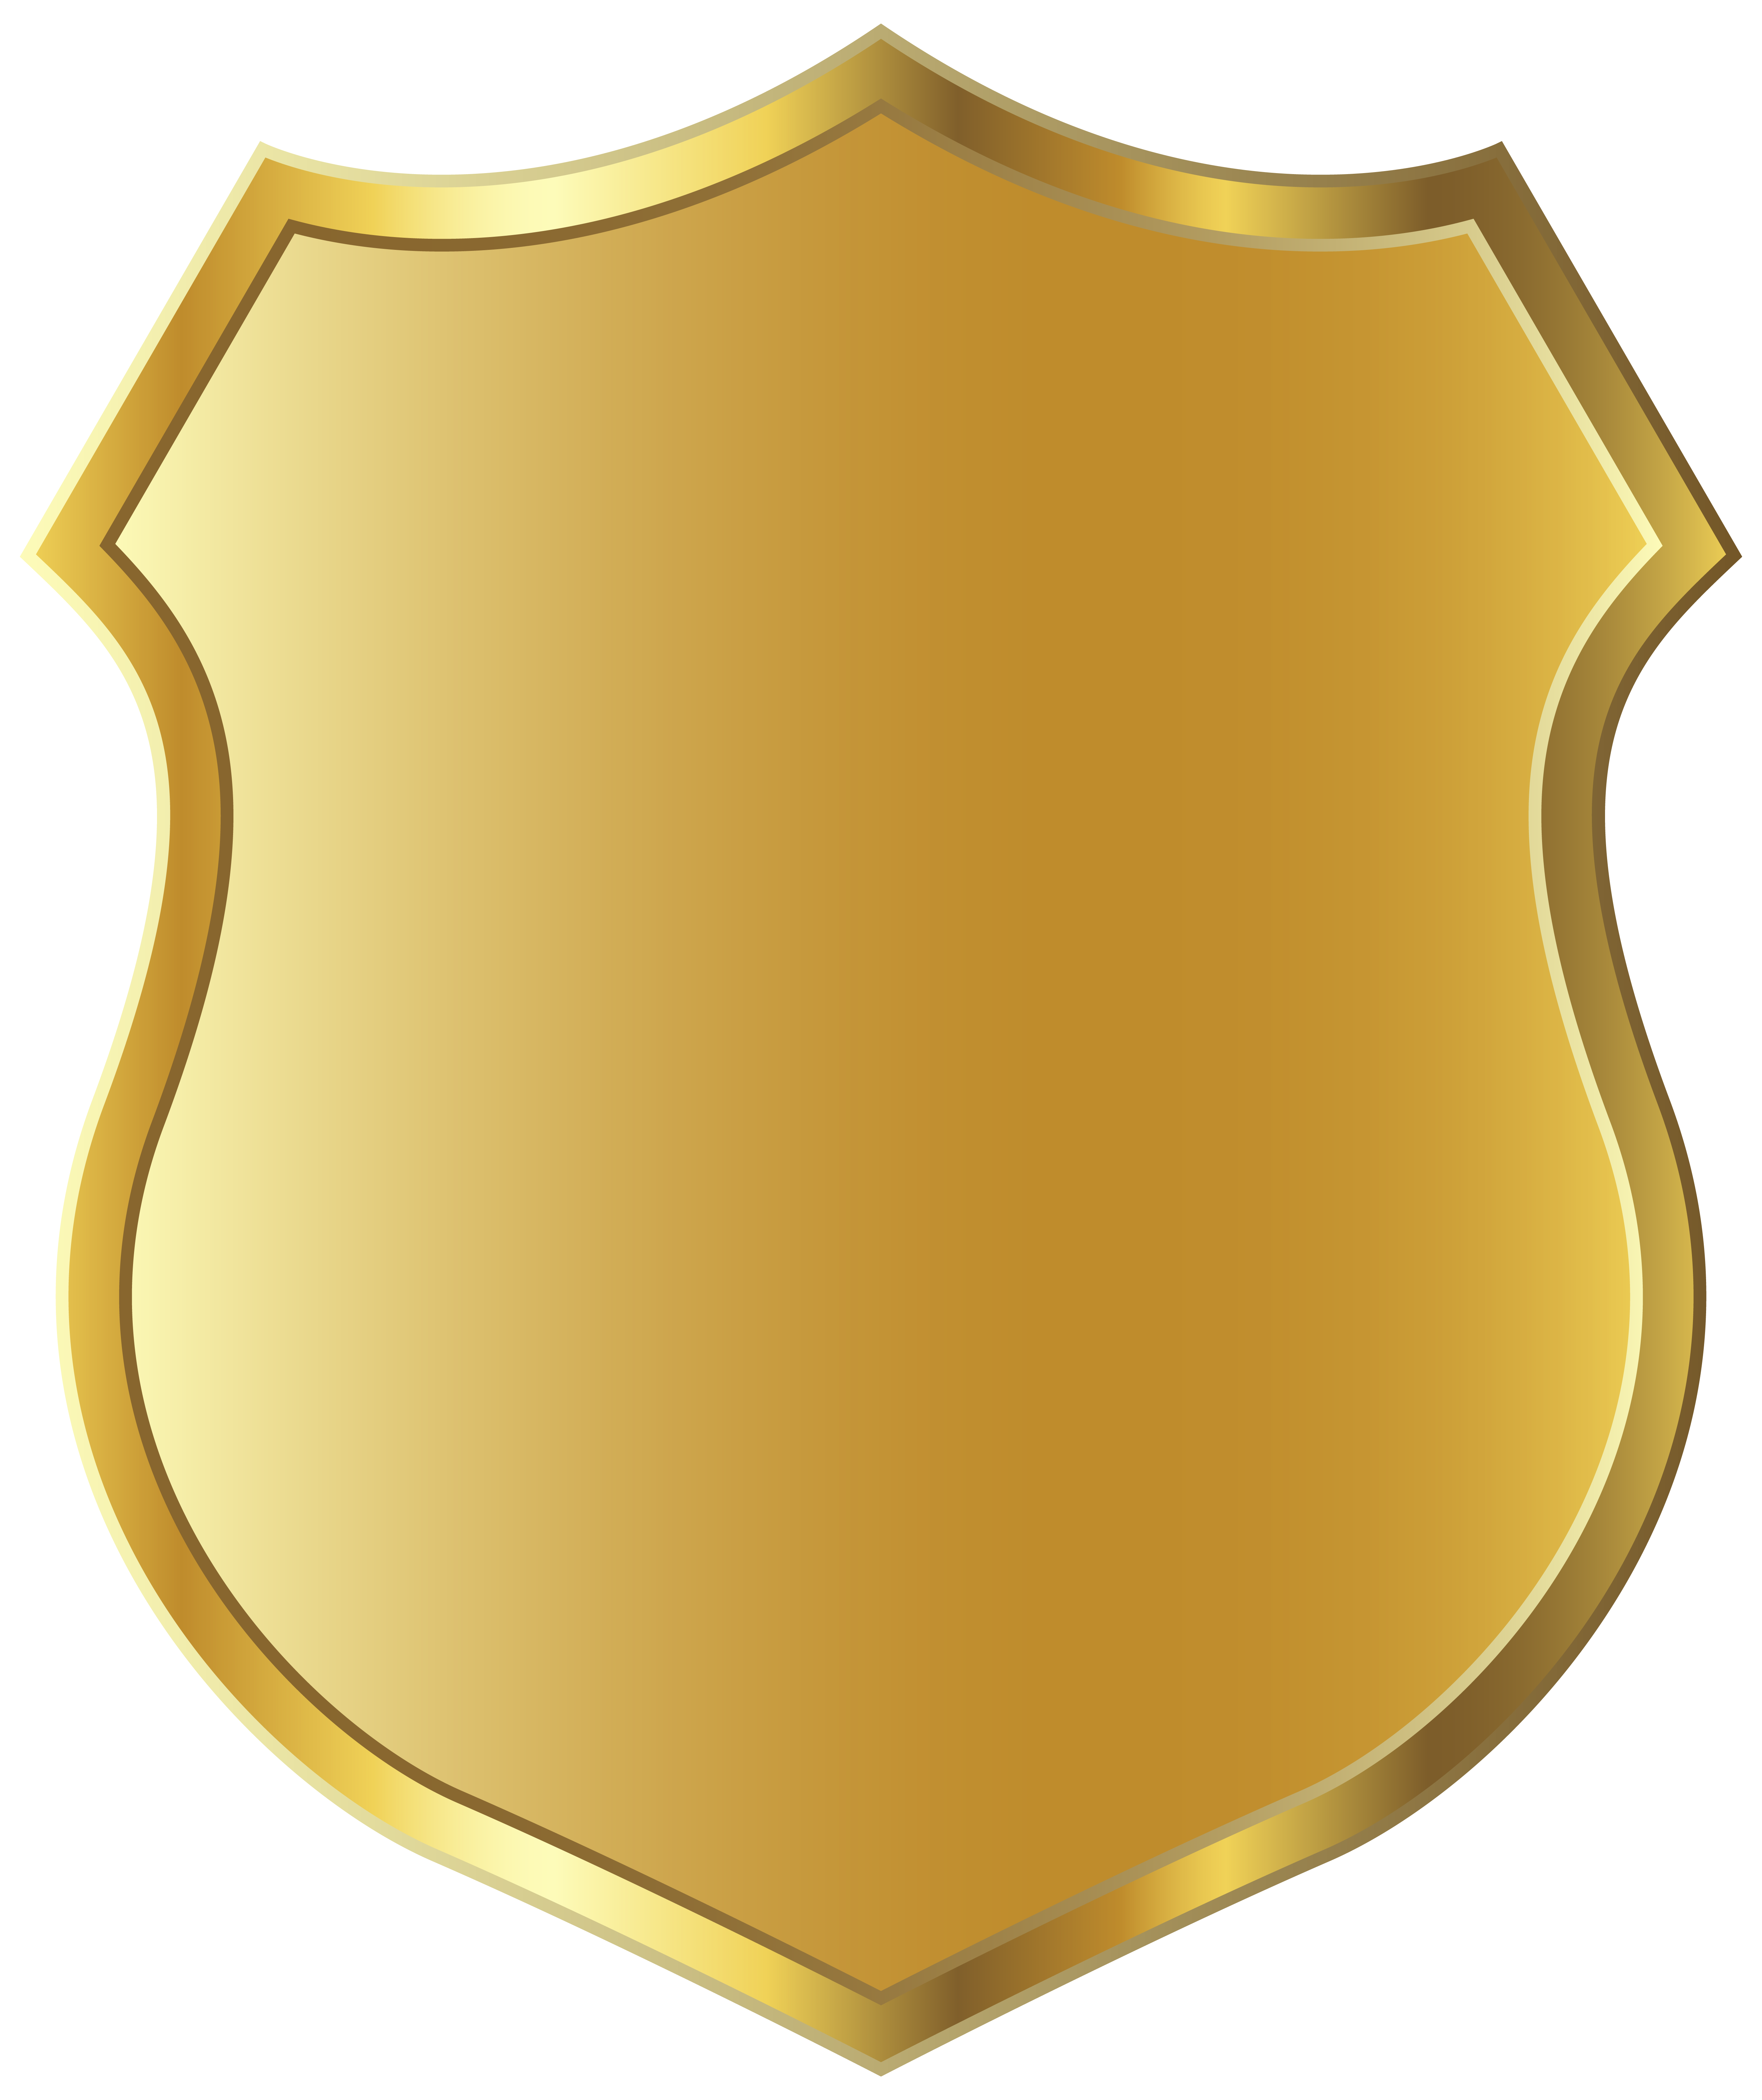 png download Golden badge template clipart. Board clip gold